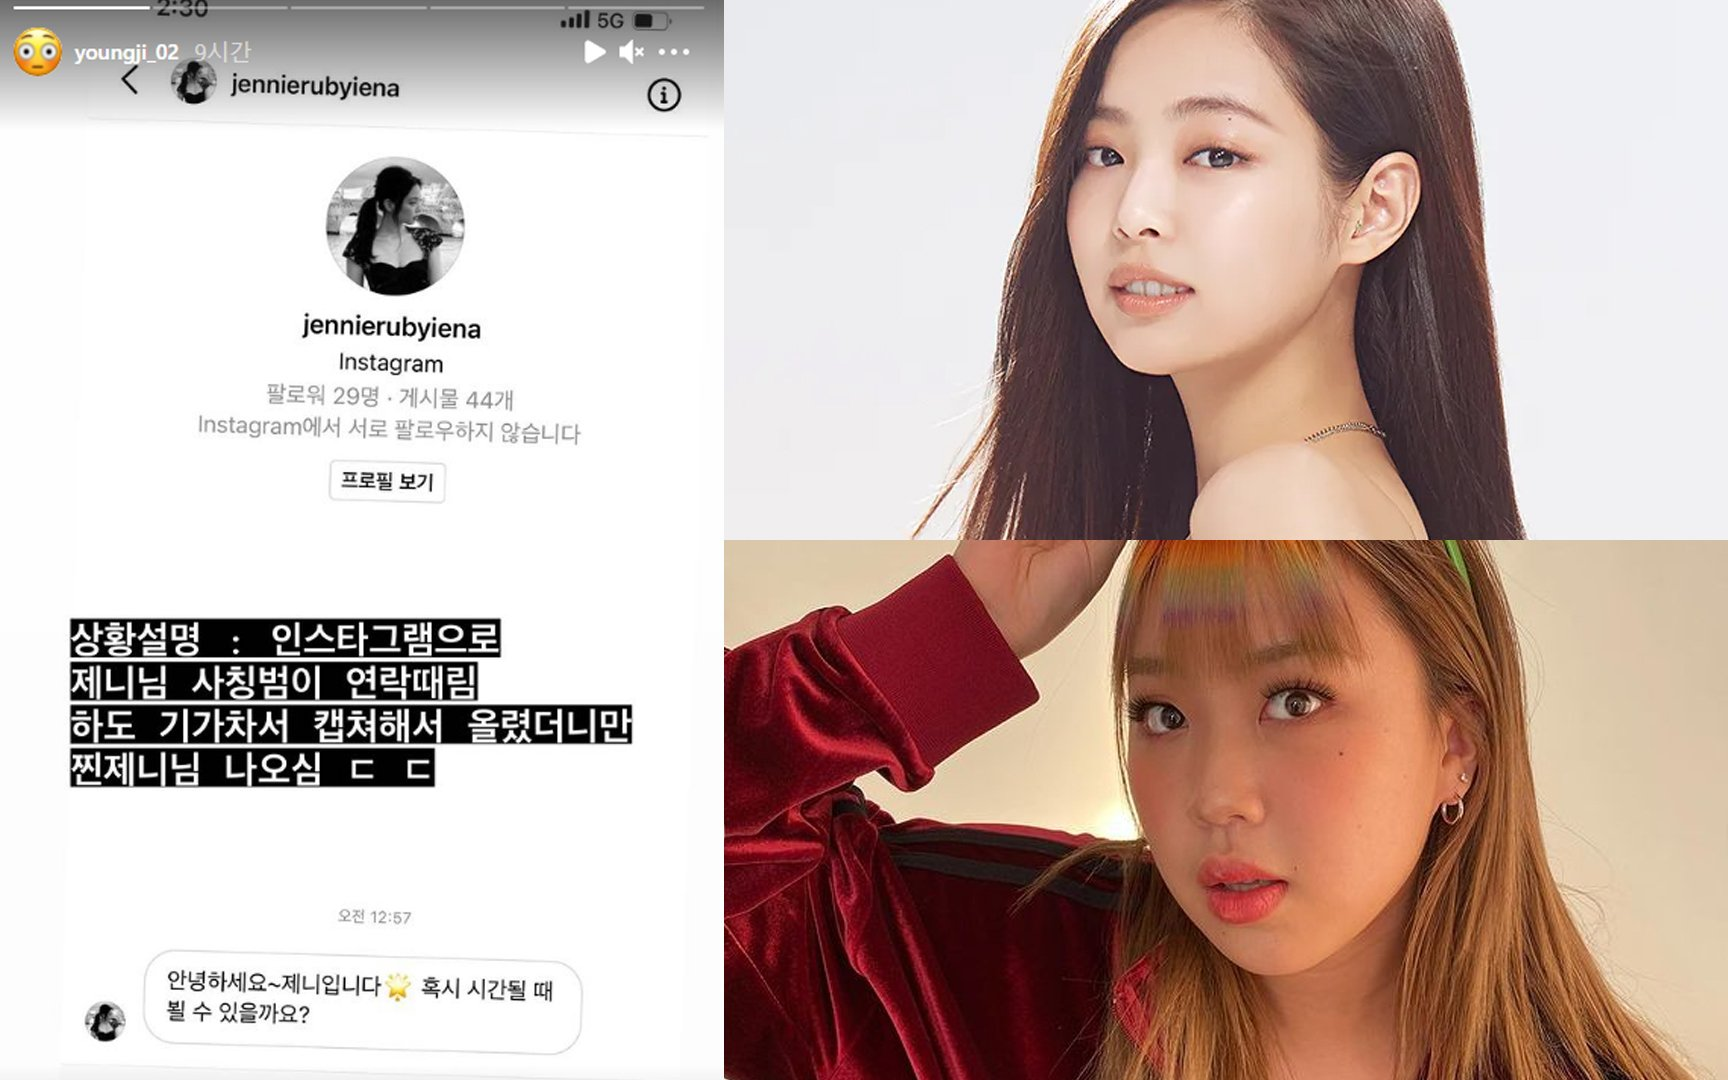 The real Jennie responds to rapper Lee Young Ji's post about an imposter Jennie   allkpop